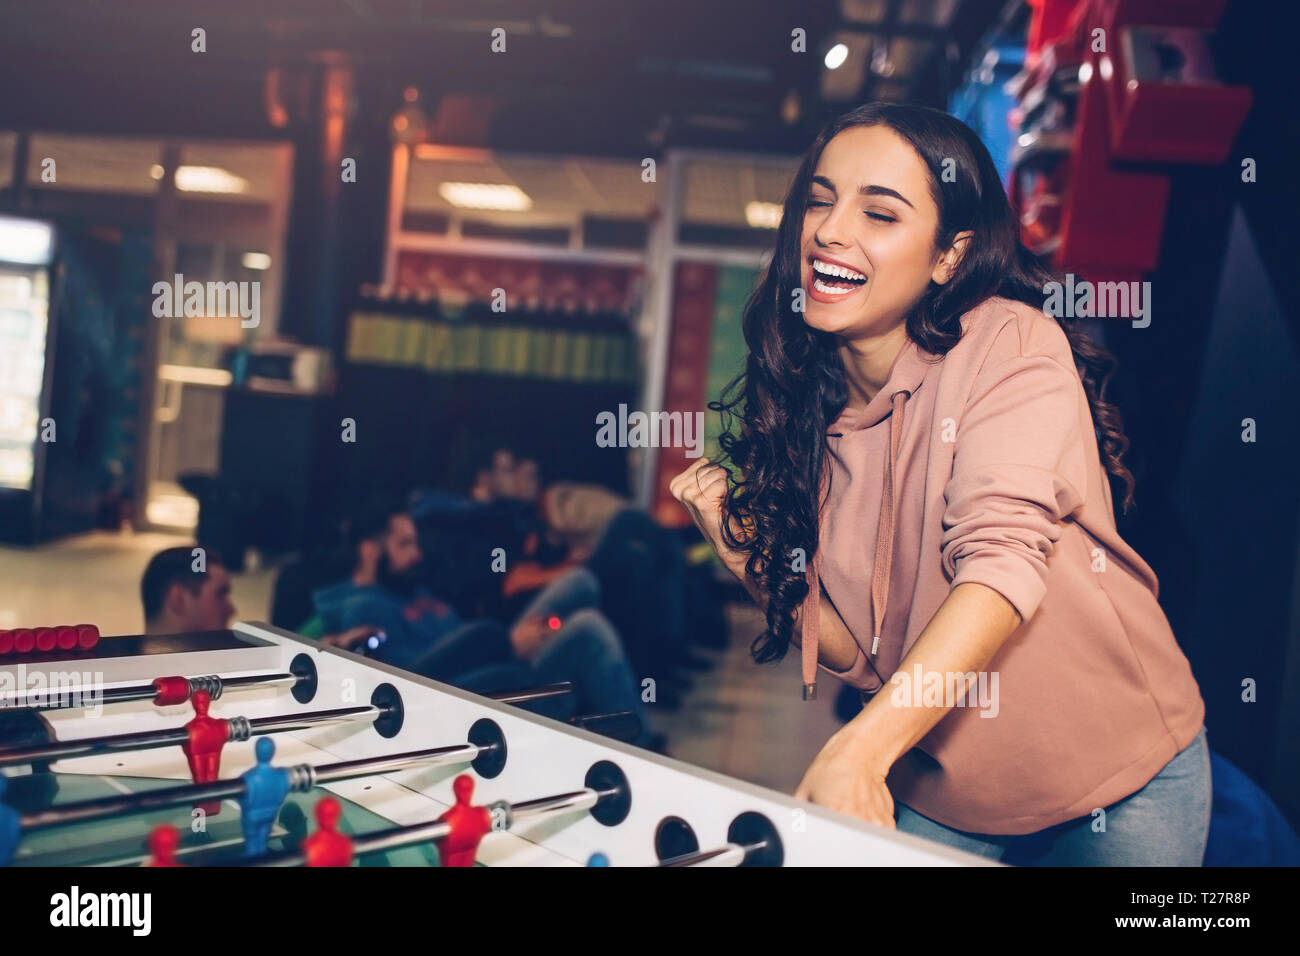 Young Attractive Woman Stand In Playing Room And Play Table